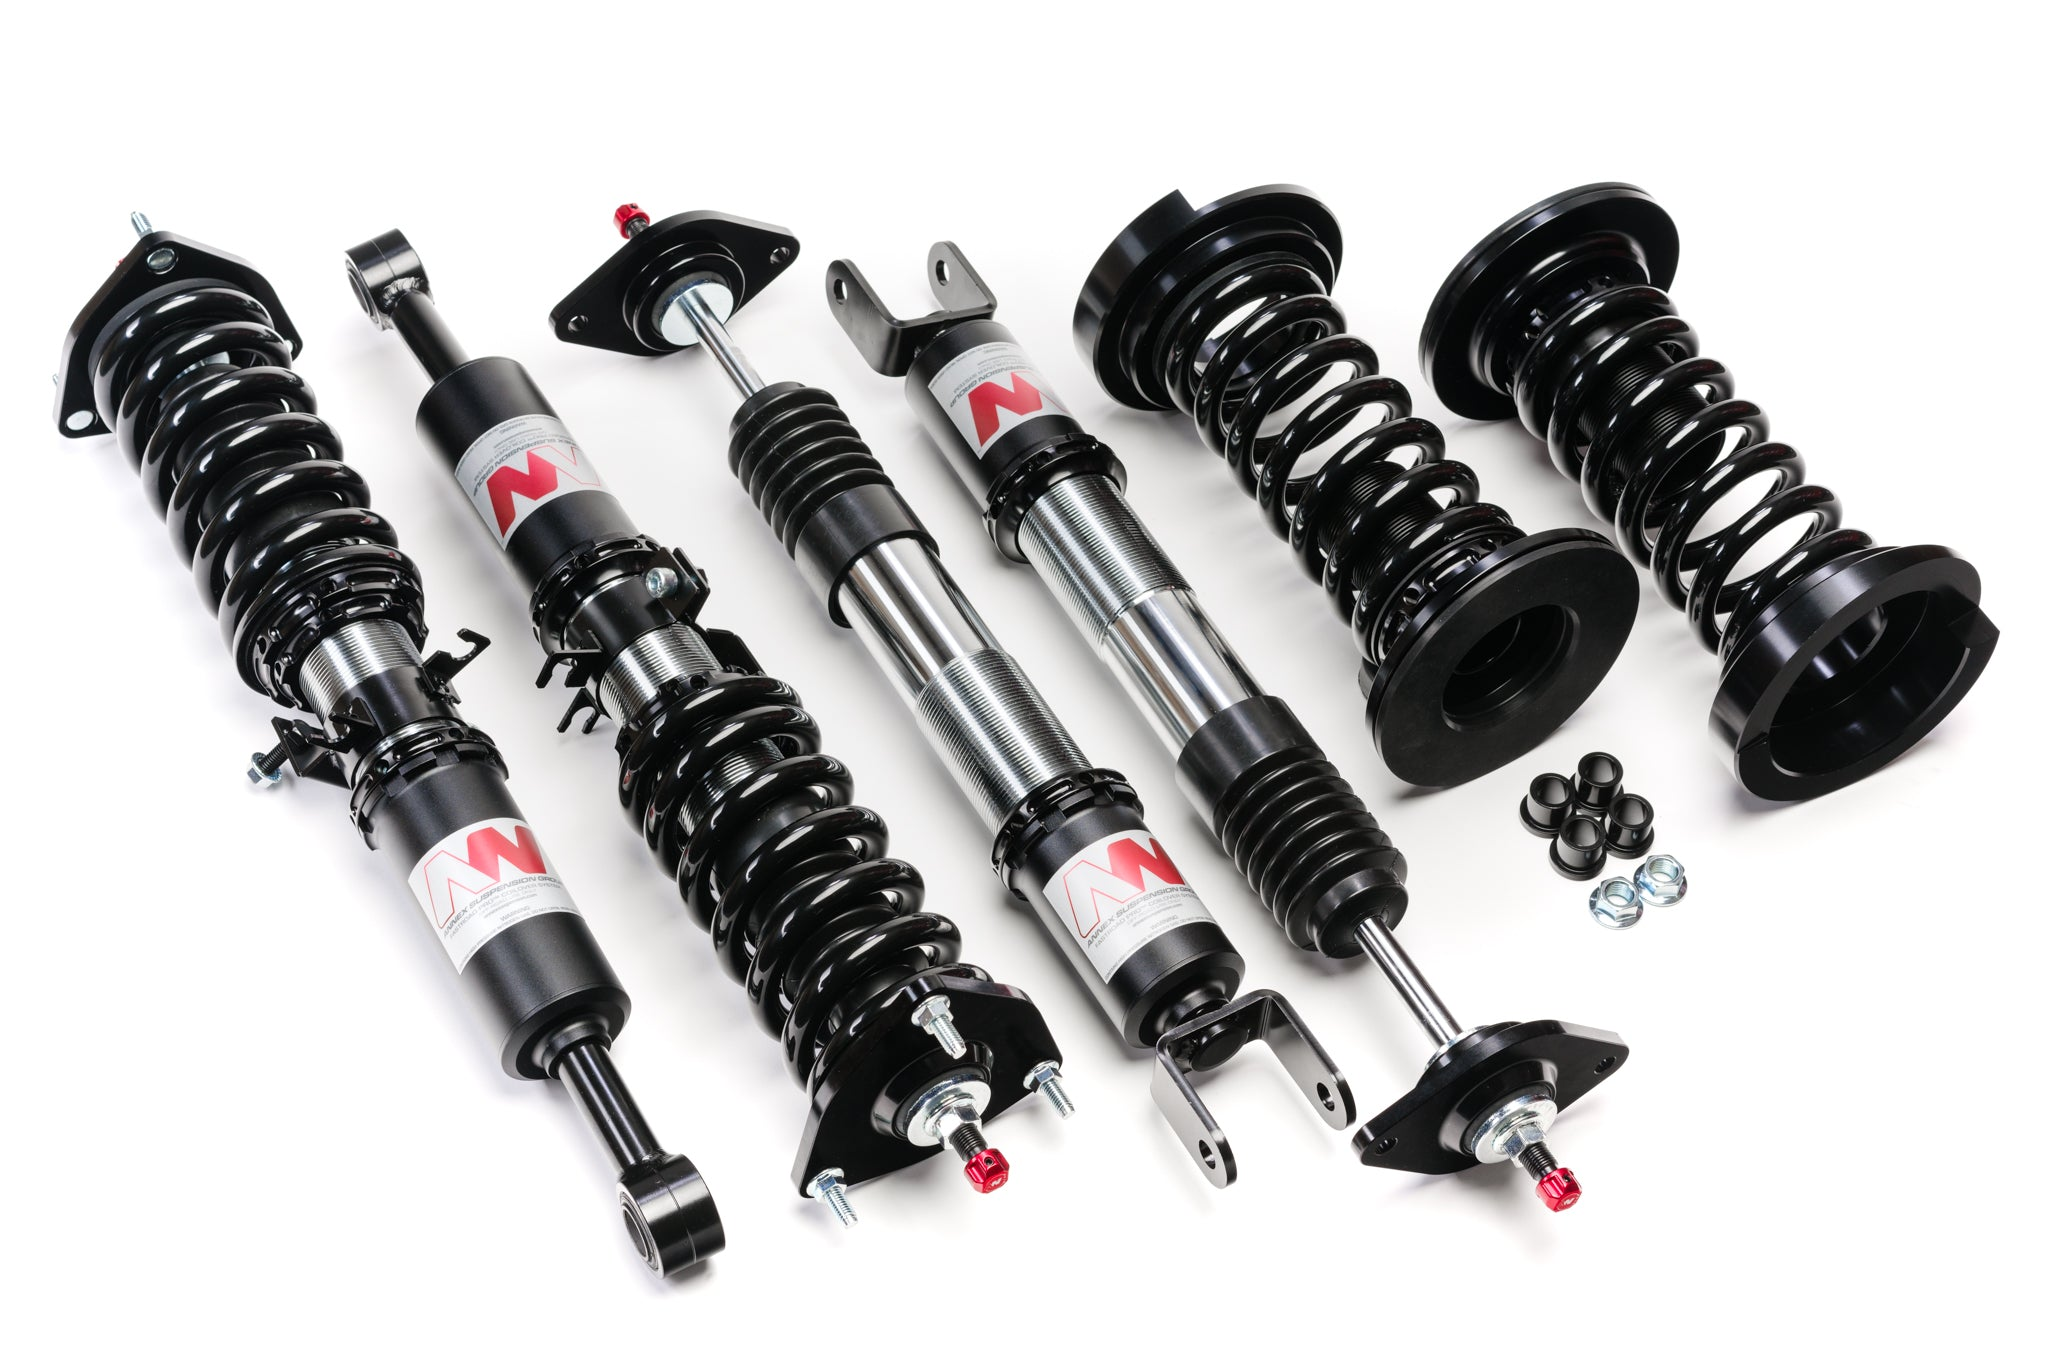 Annex Suspension Fastroad Pro Coilovers Best Infiniti 2007-2008 Sedan G35 for Daily Driving (Street Driving and Track Comfort)